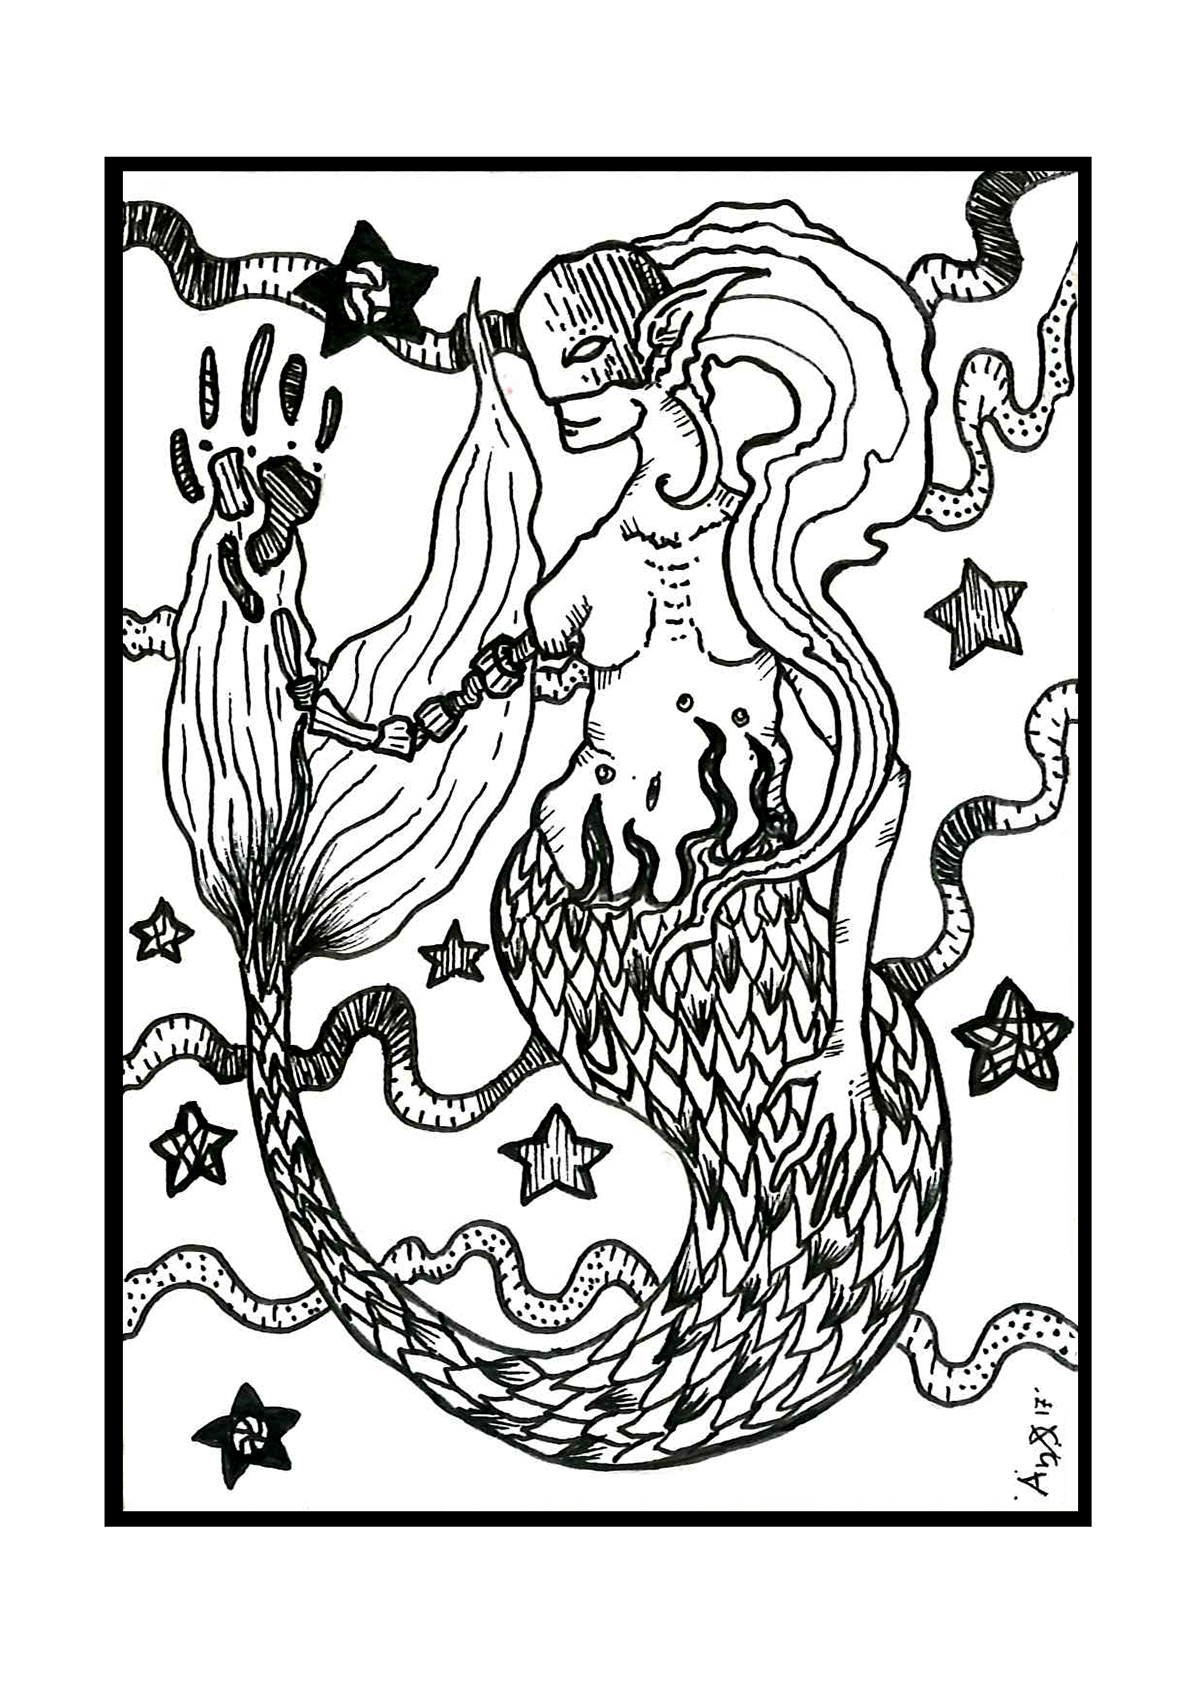 coloring book black and white creatures monsters pen illustration queer mermaid goat plants Patterns